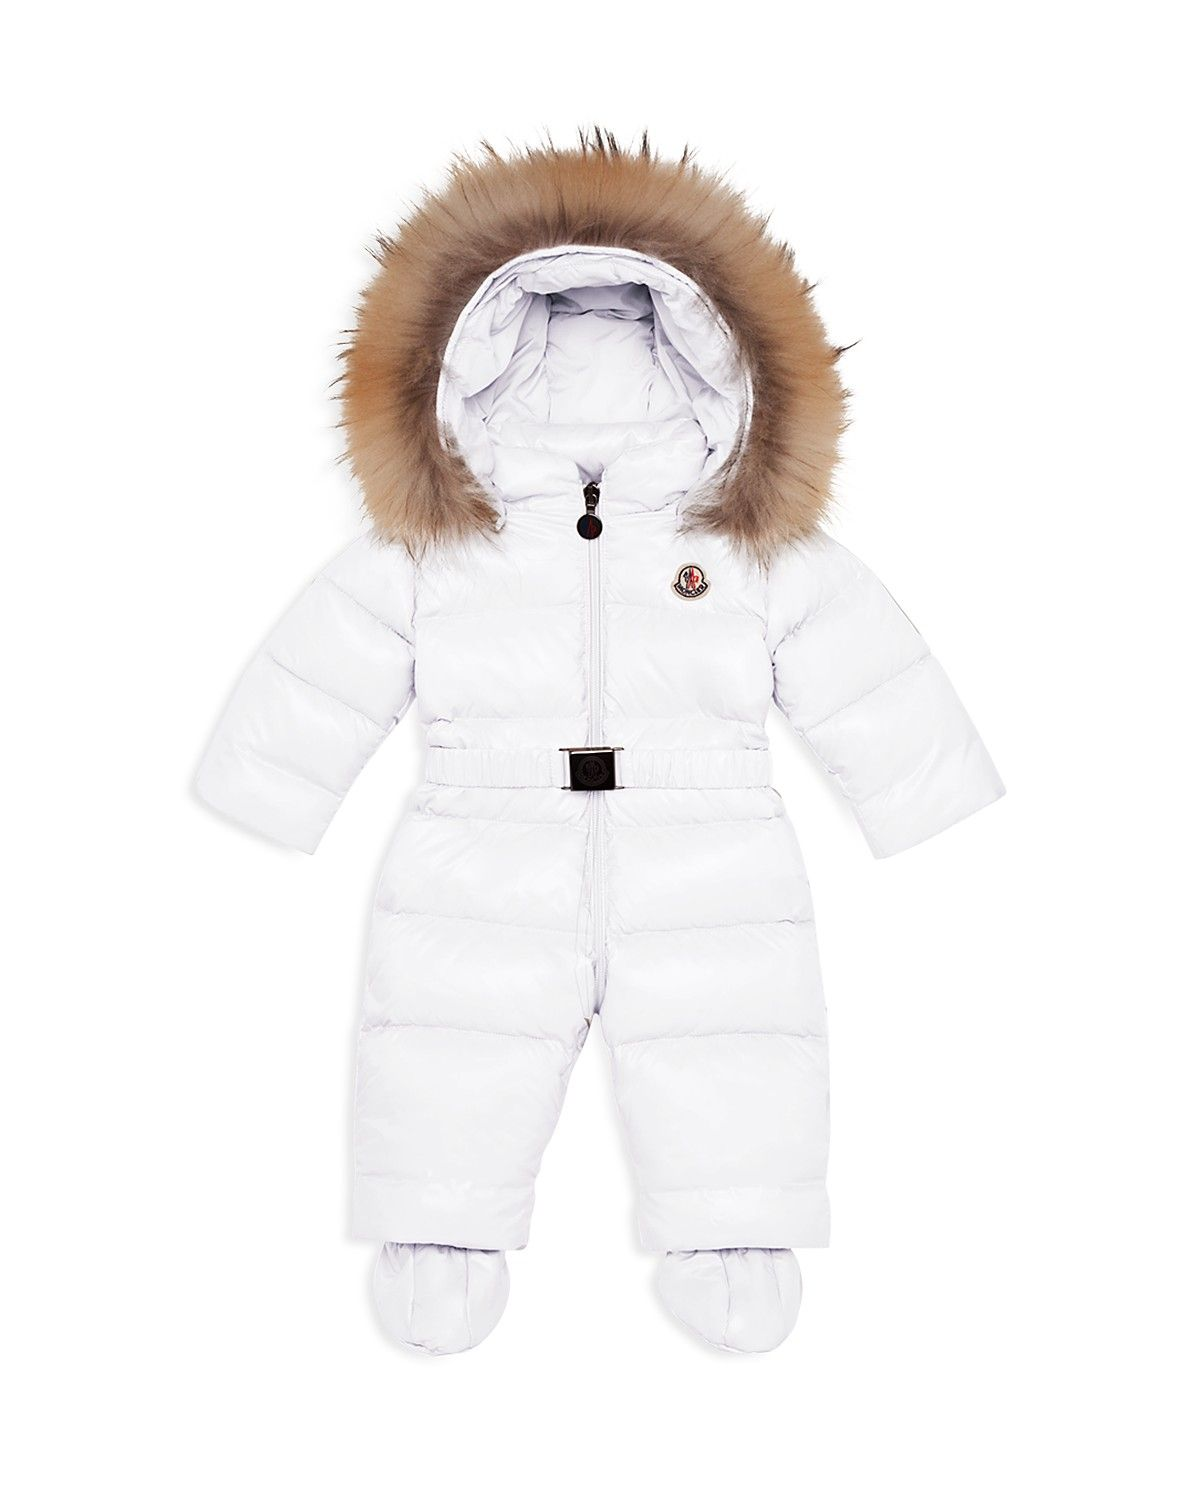 Moncler Infant Girls Crystal Snowsuit Sizes 3 12 Months Kids Baby Baby Girl 0 24 Months Bloomingdale S Baby Girl Snowsuit Snow Suit Toddler Snowsuit